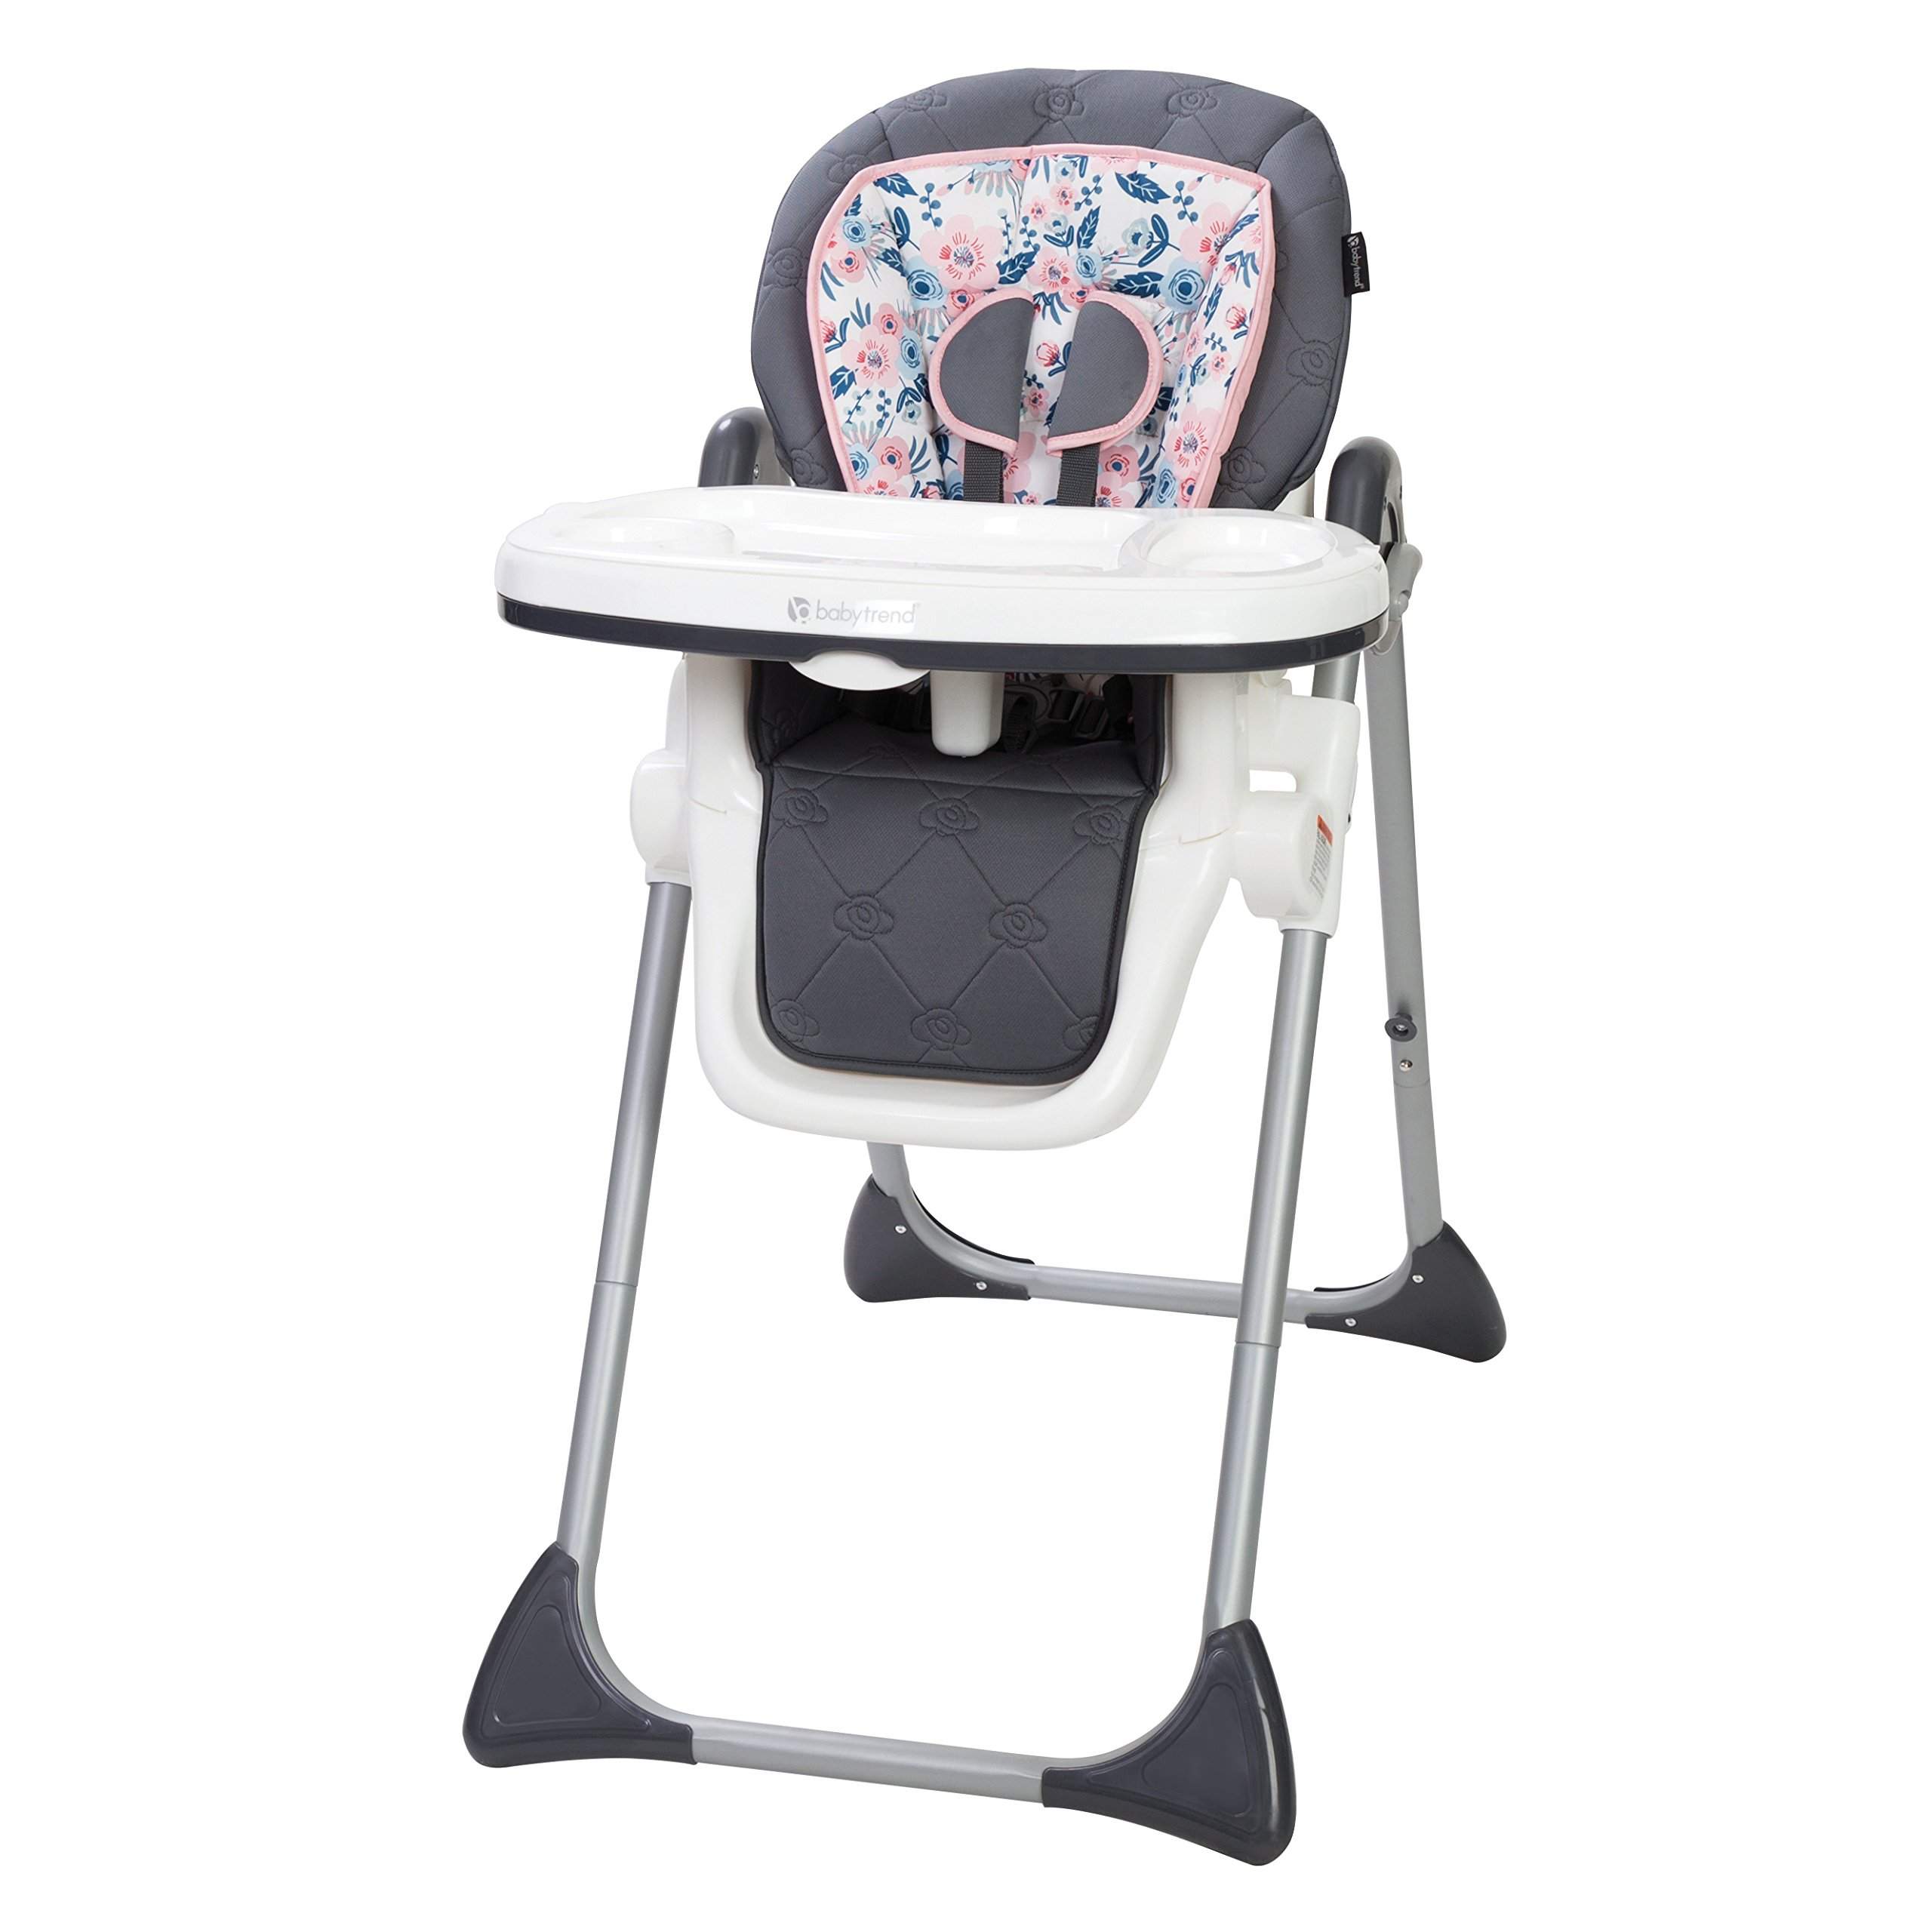 Baby Trend Tot Spot High Chair, Bluebell by Baby Trend